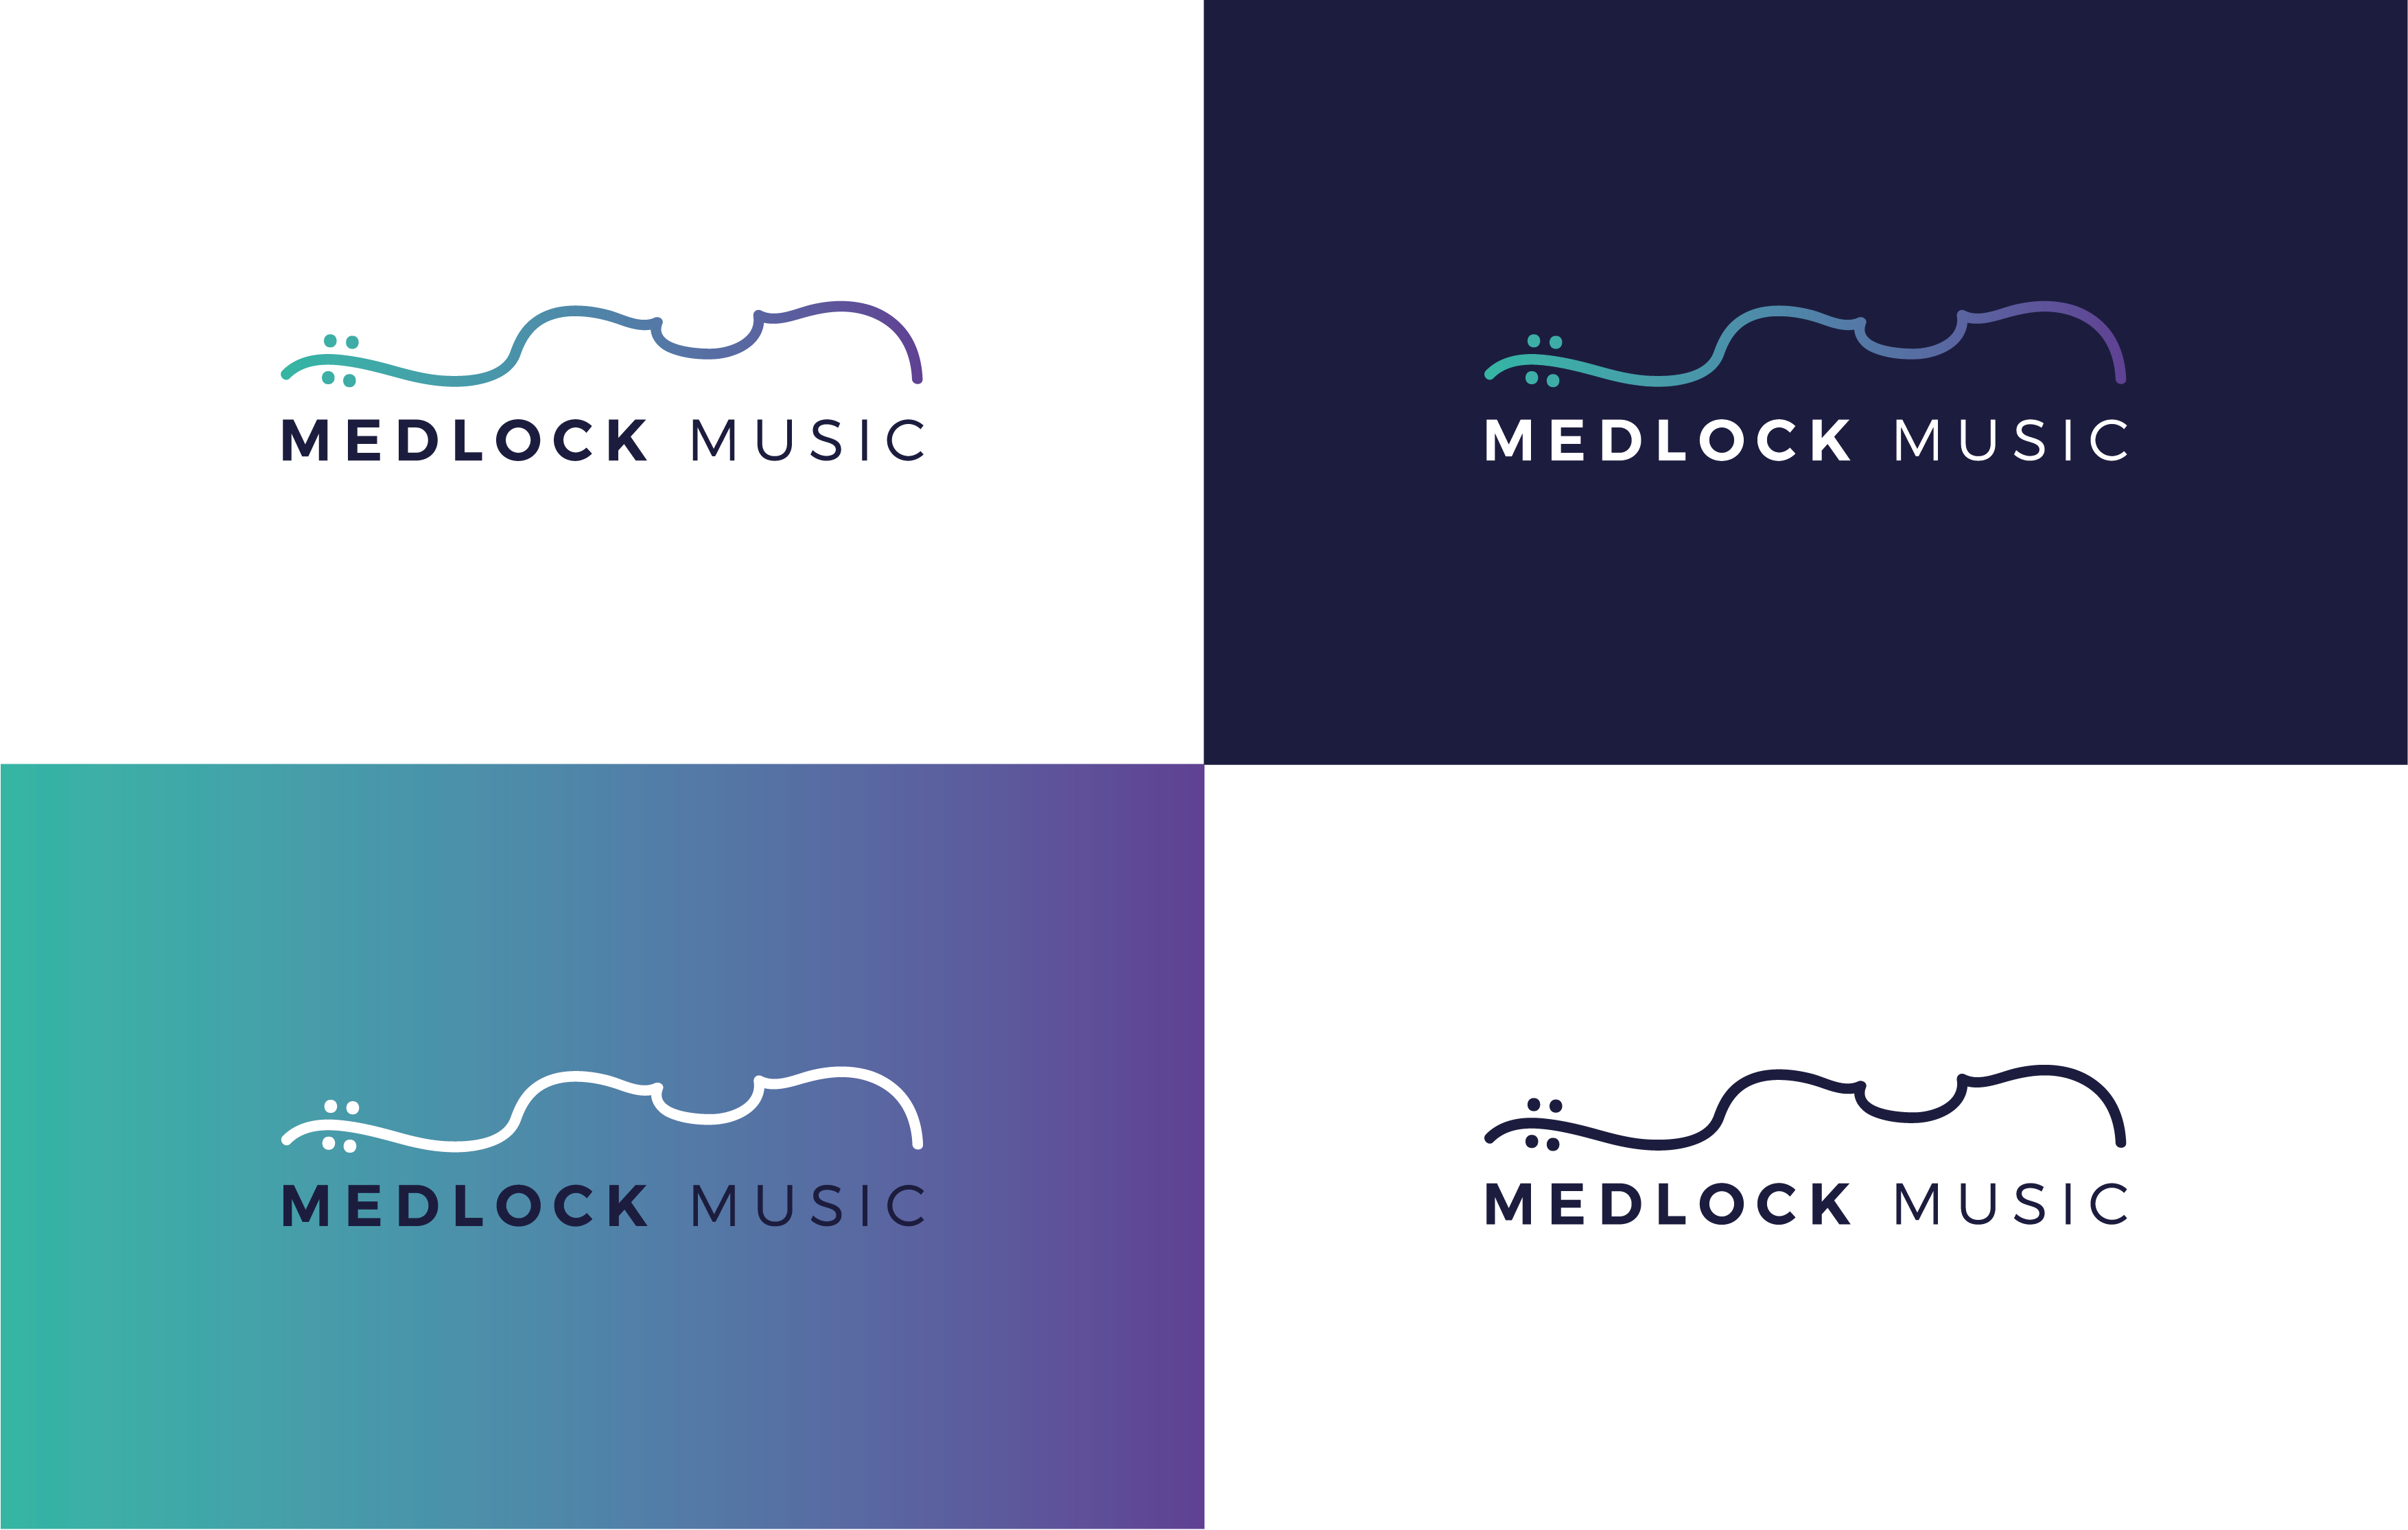 Medlock Music Logo 4 way